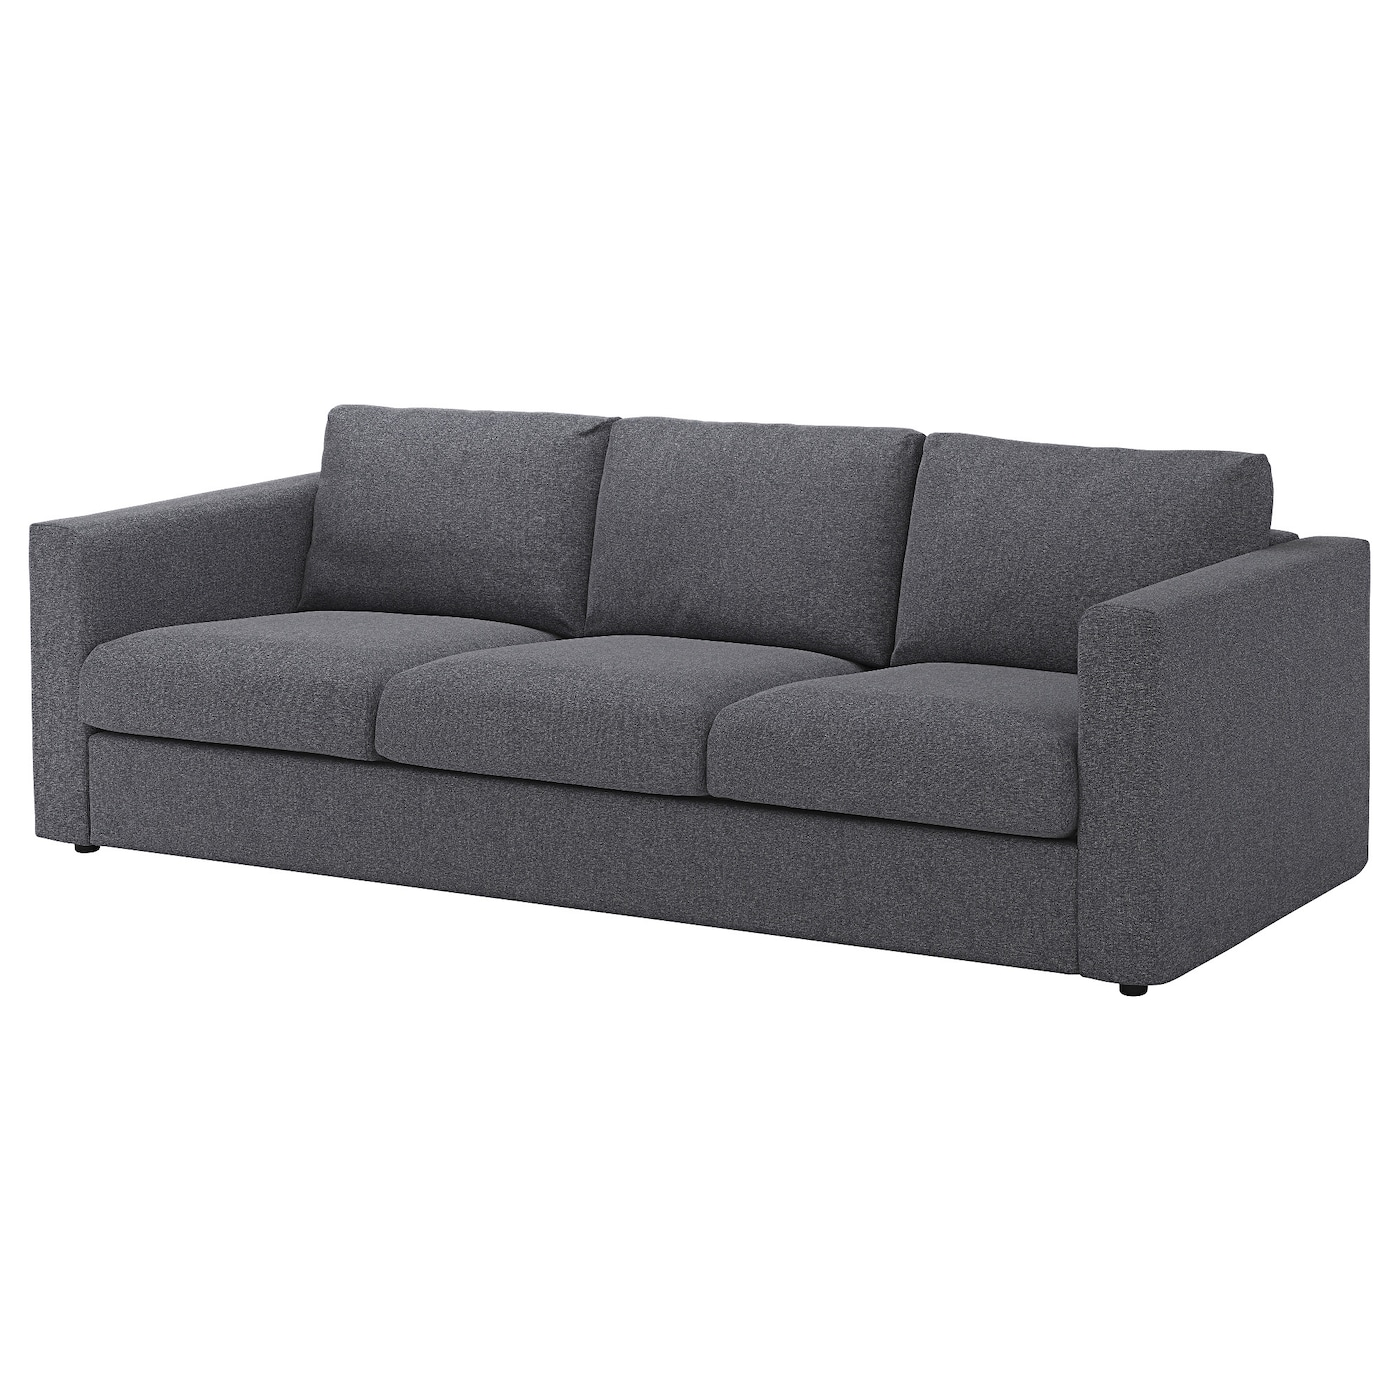 Amazing sofa covers by ikea ireland sectional sofas for Sofa cushion covers ireland